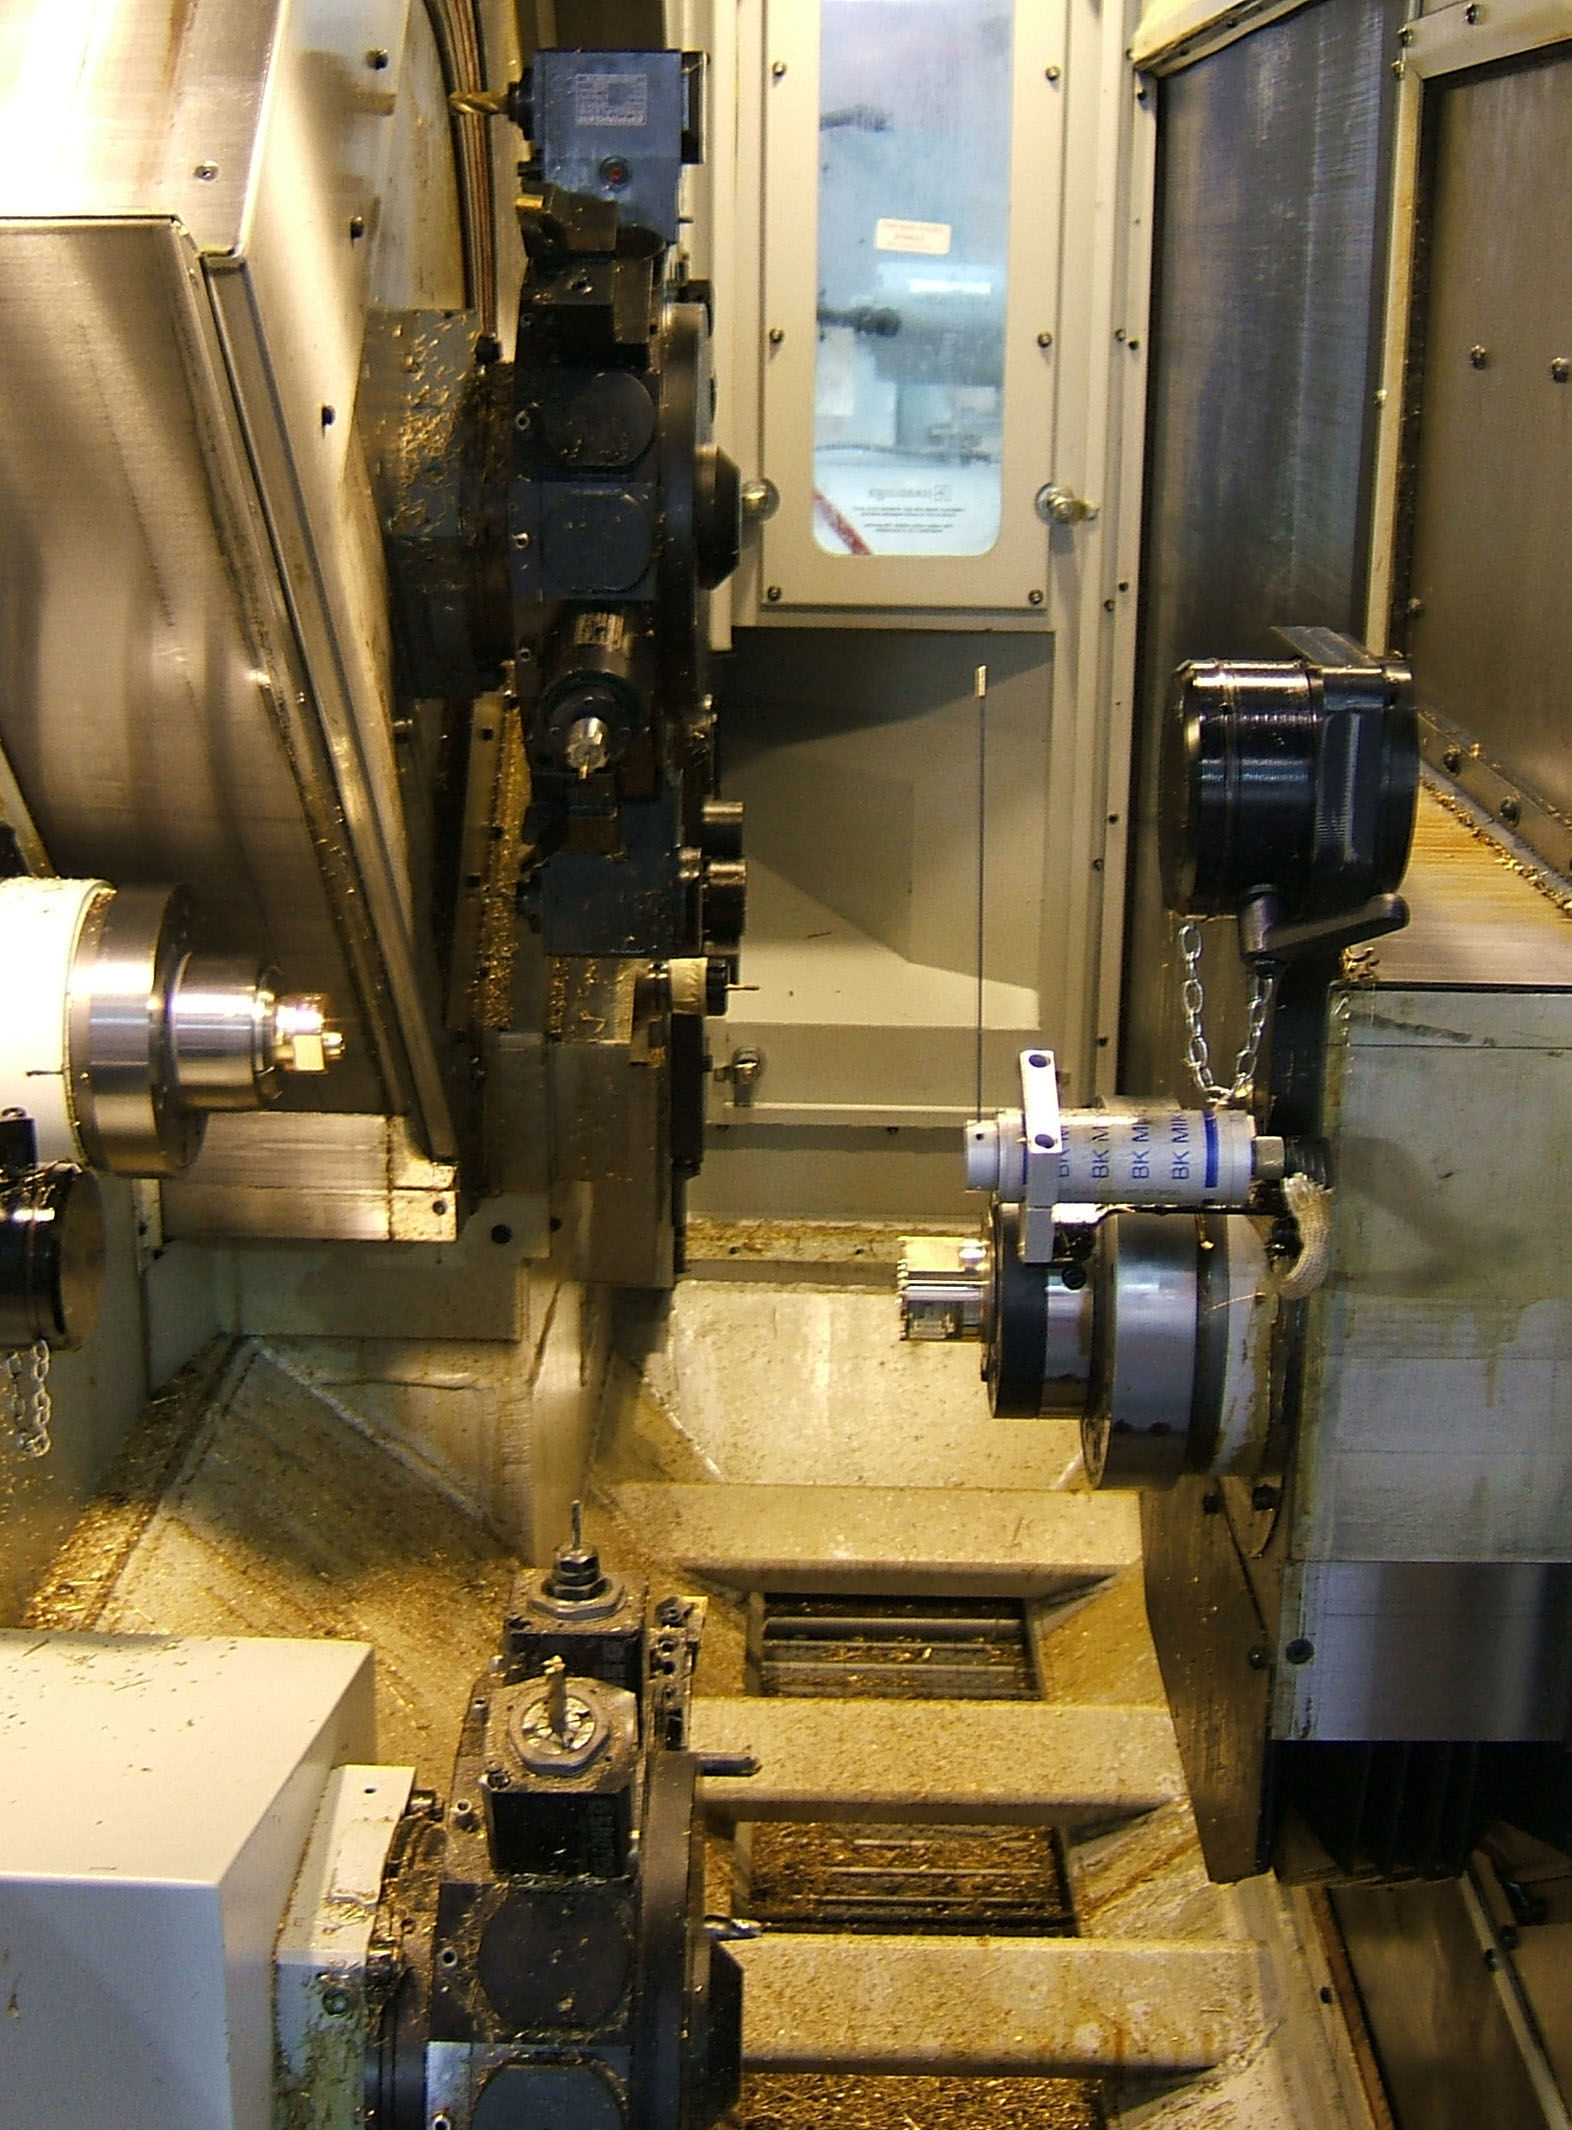 PCI in Enclosure Networked to 16 Fuji Lathes